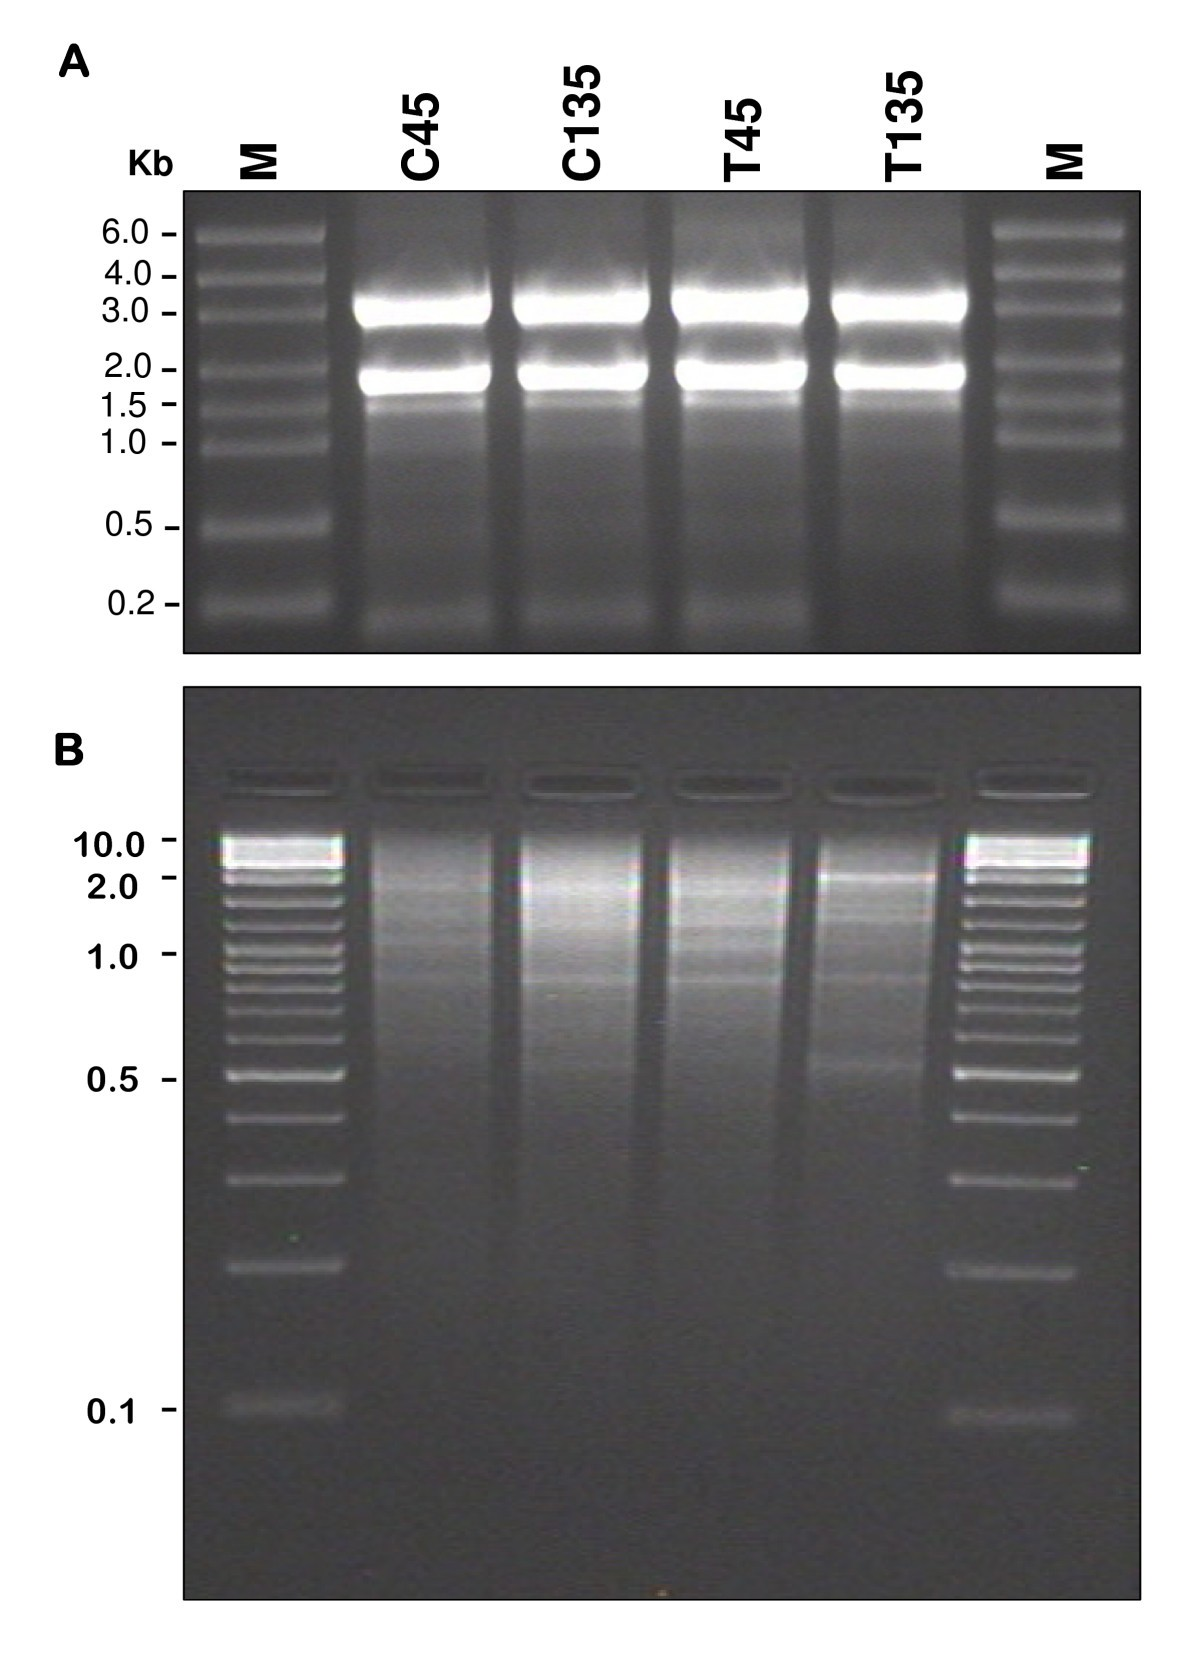 comparative 454 pyrosequencing of transcripts from two